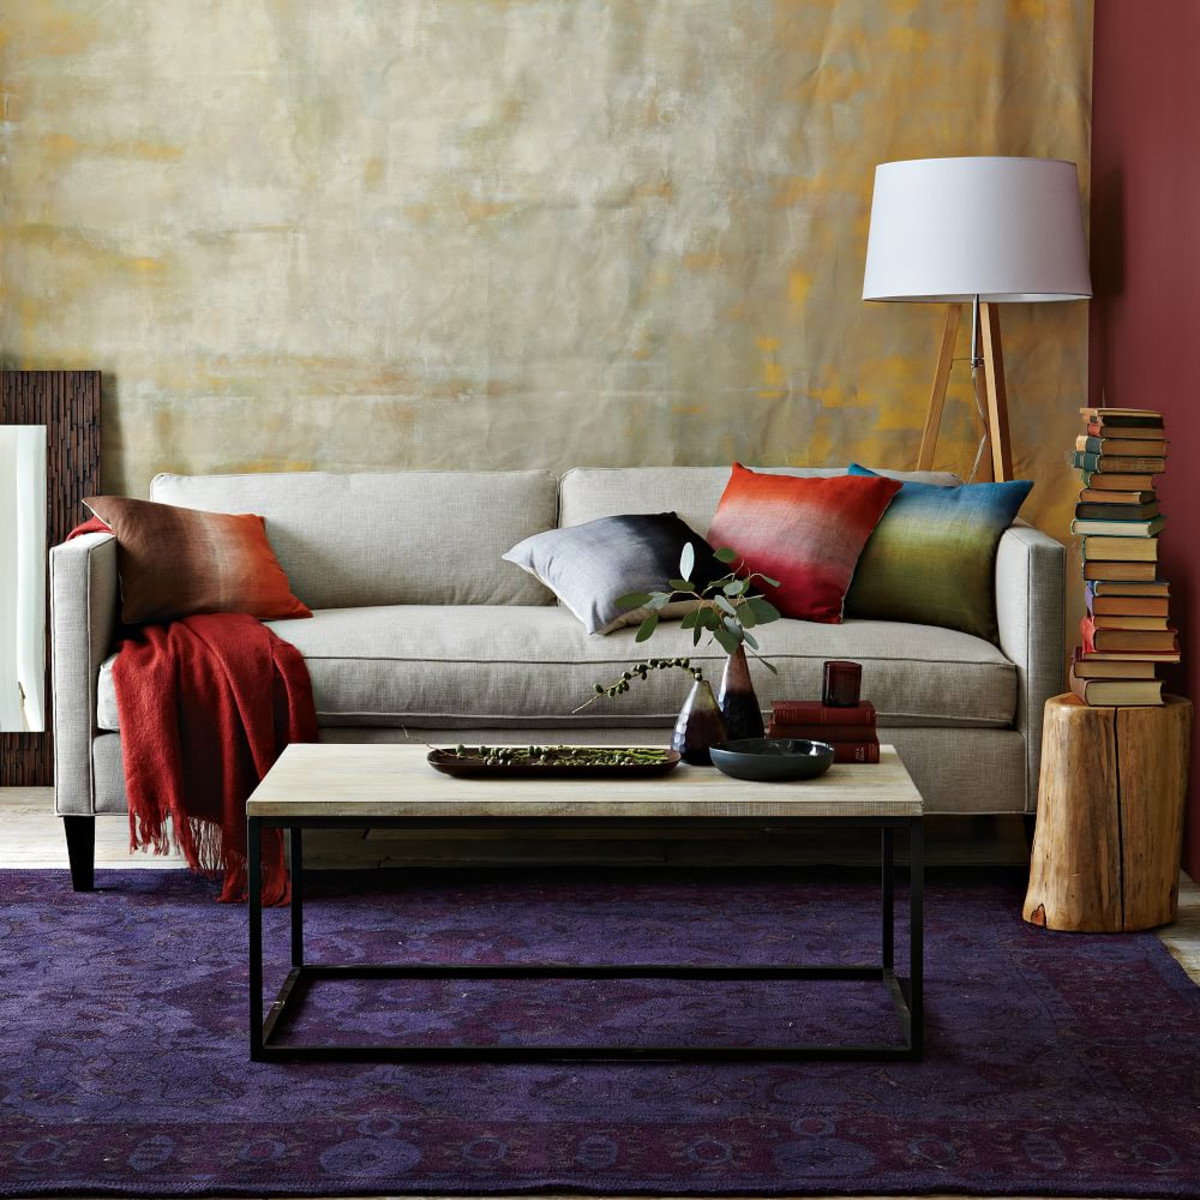 west elm dunham sofa reviews laybag air review question test tripod wood floor lamp timbers with veins